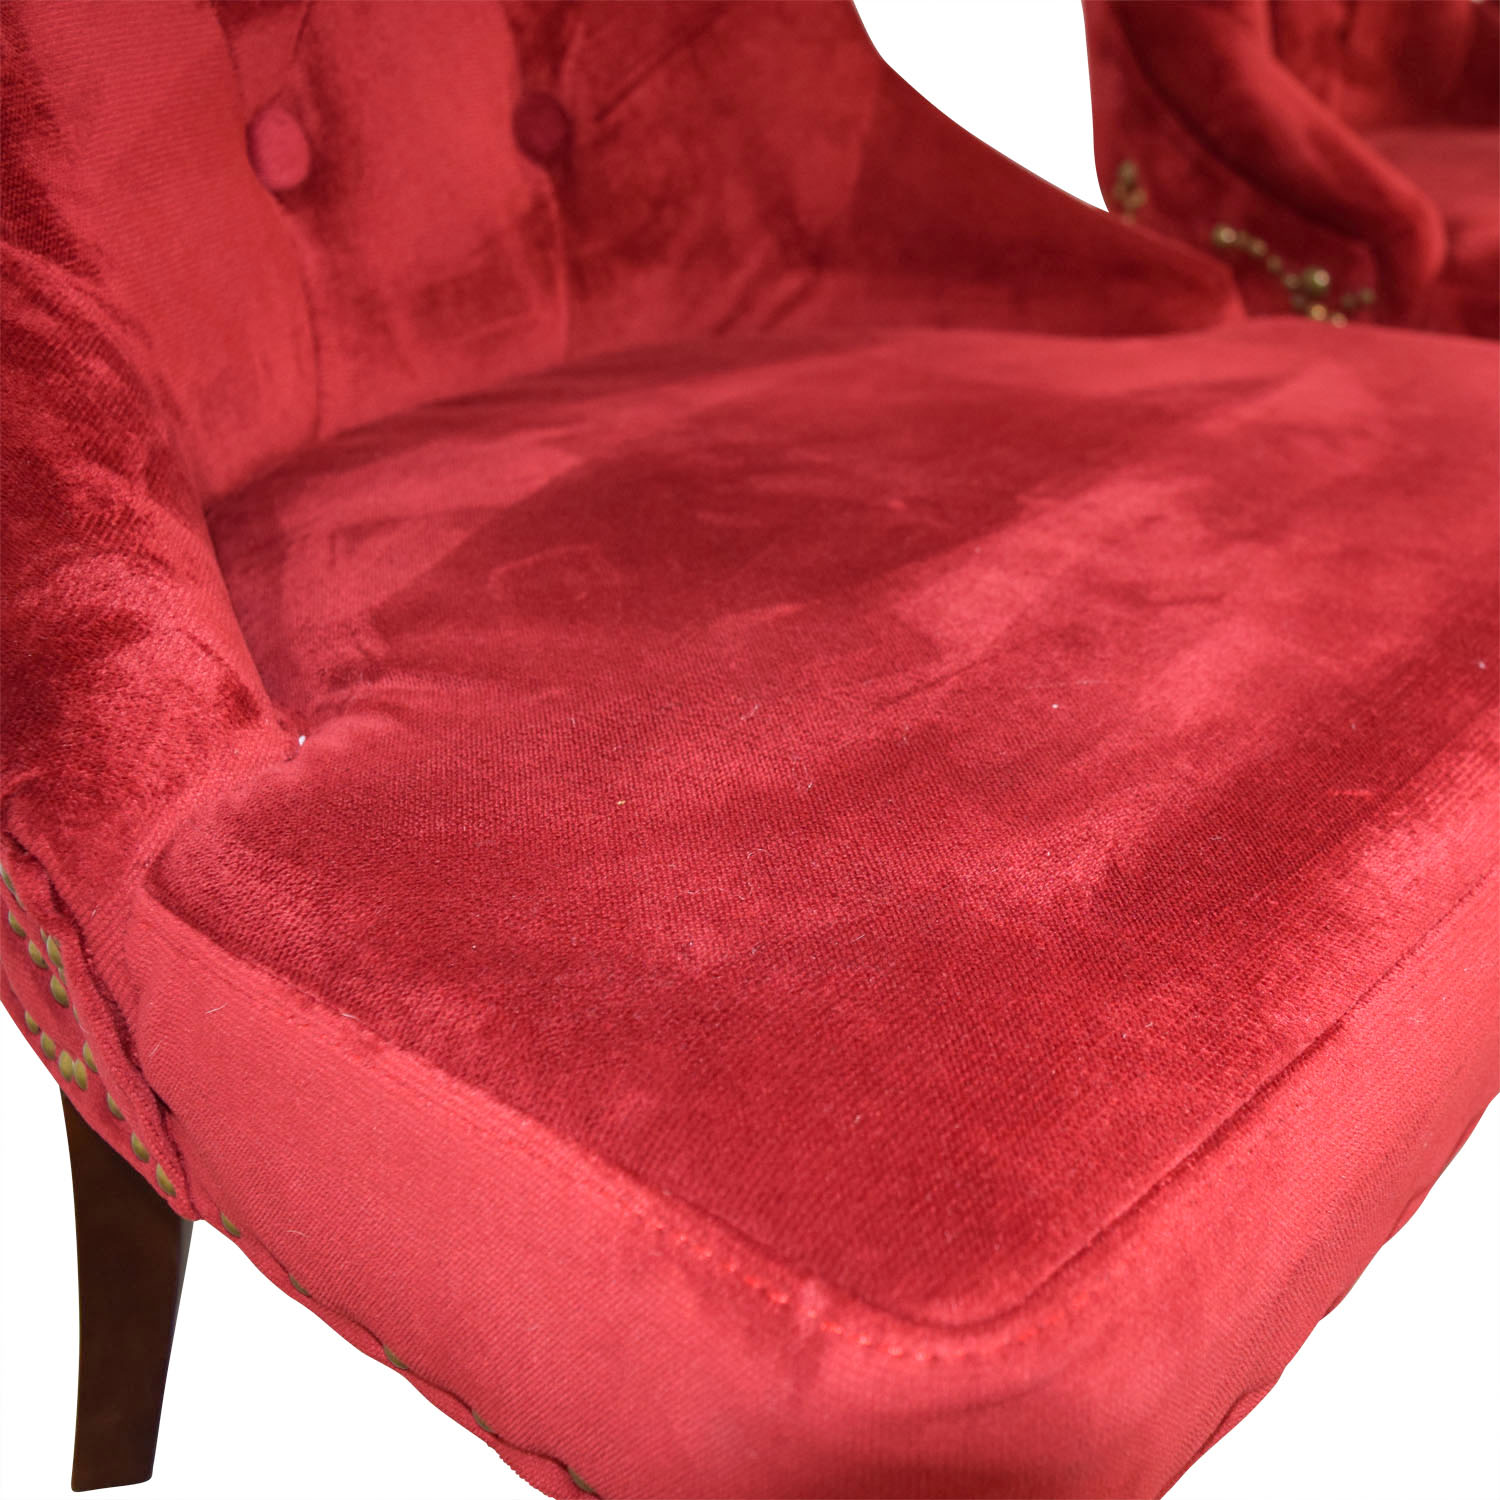 ... Tufted Nailhead Red Velvet Dining Chairs nj & 50% OFF - Tufted Nailhead Red Velvet Dining Chairs / Chairs